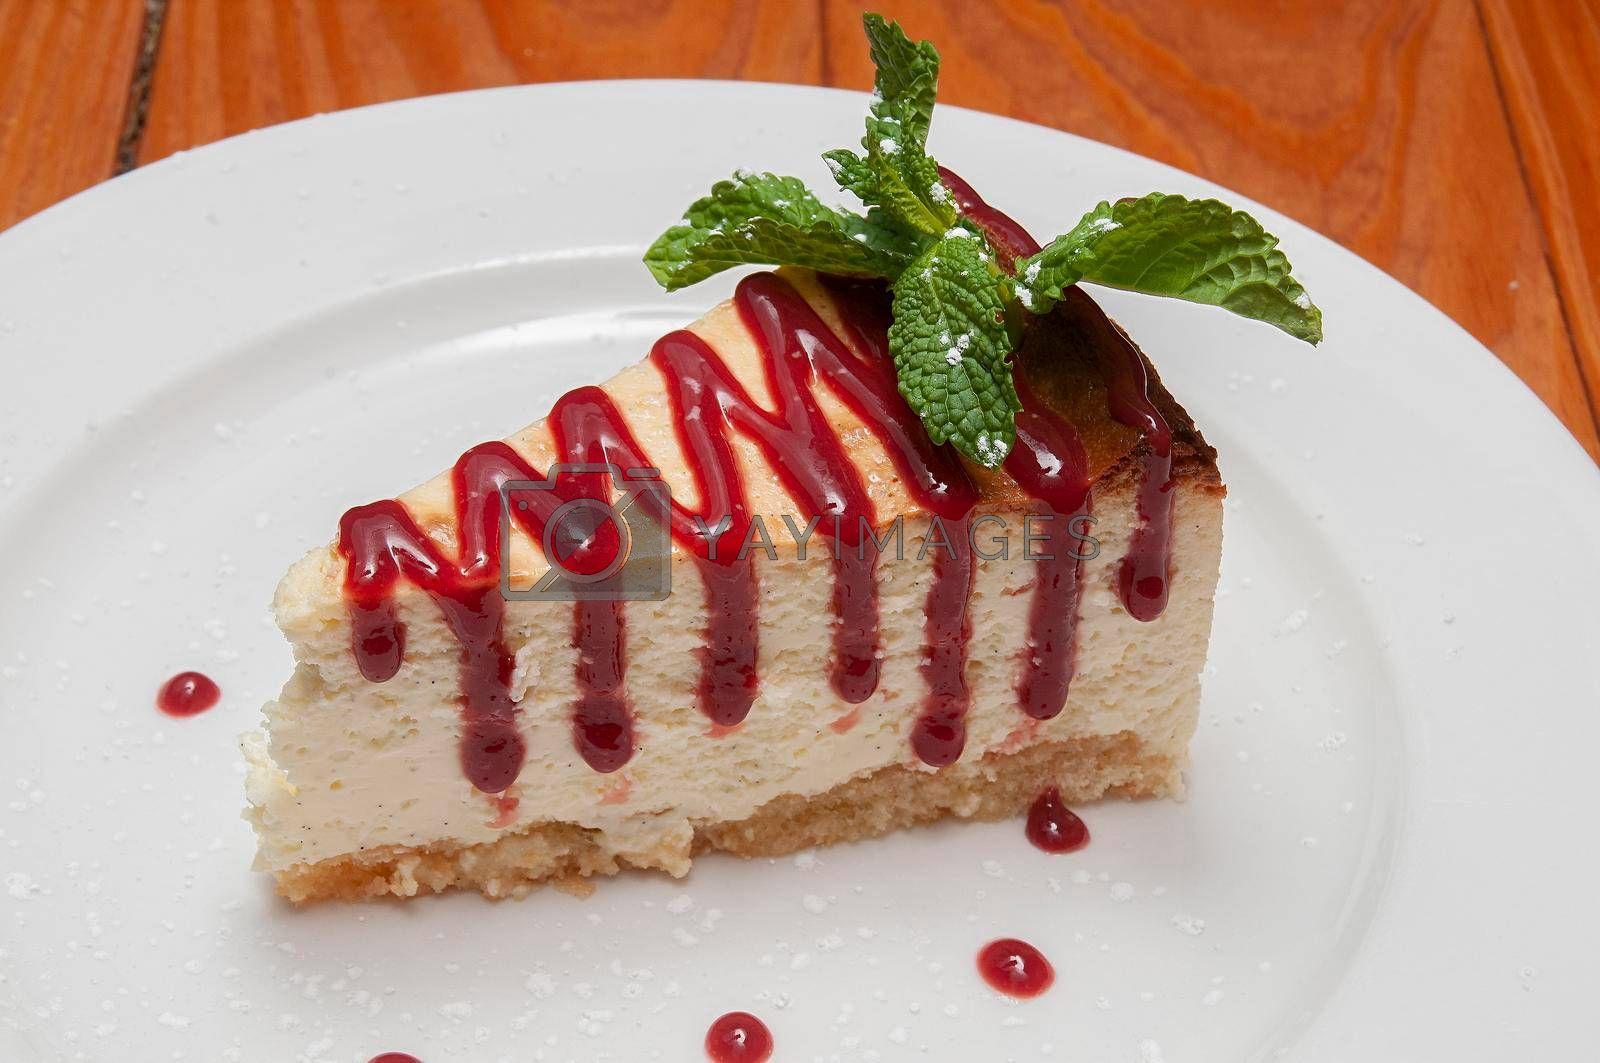 Delicious dessert food known as the cheesecake